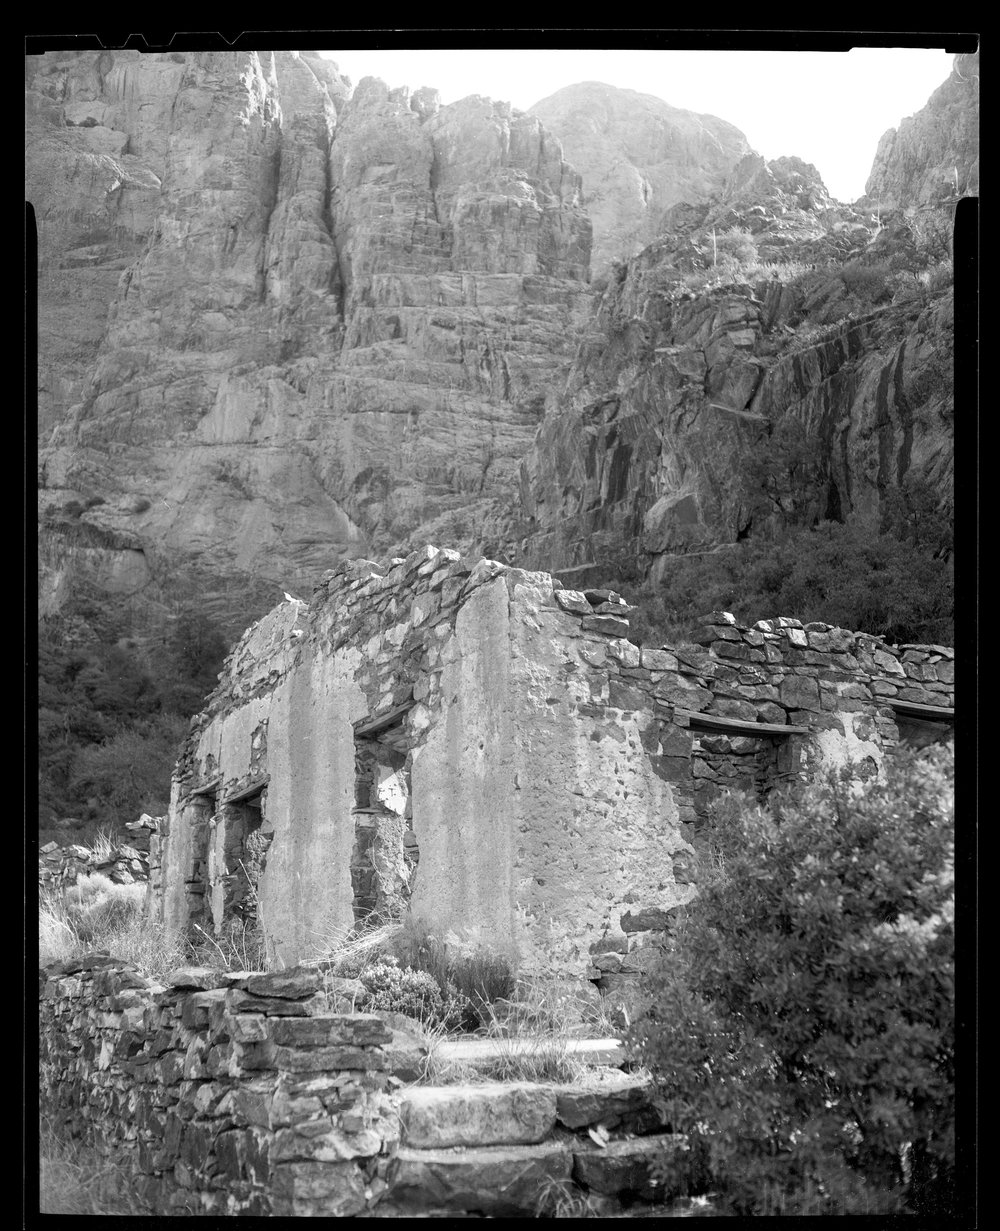 Ruins of the Van Patten Camp, at Dripping Springs in the Organ Mountains, NM. CAMERADACTYL OG 4x5, Expired (1992) Plus-X, Kodak Ektar 127mm